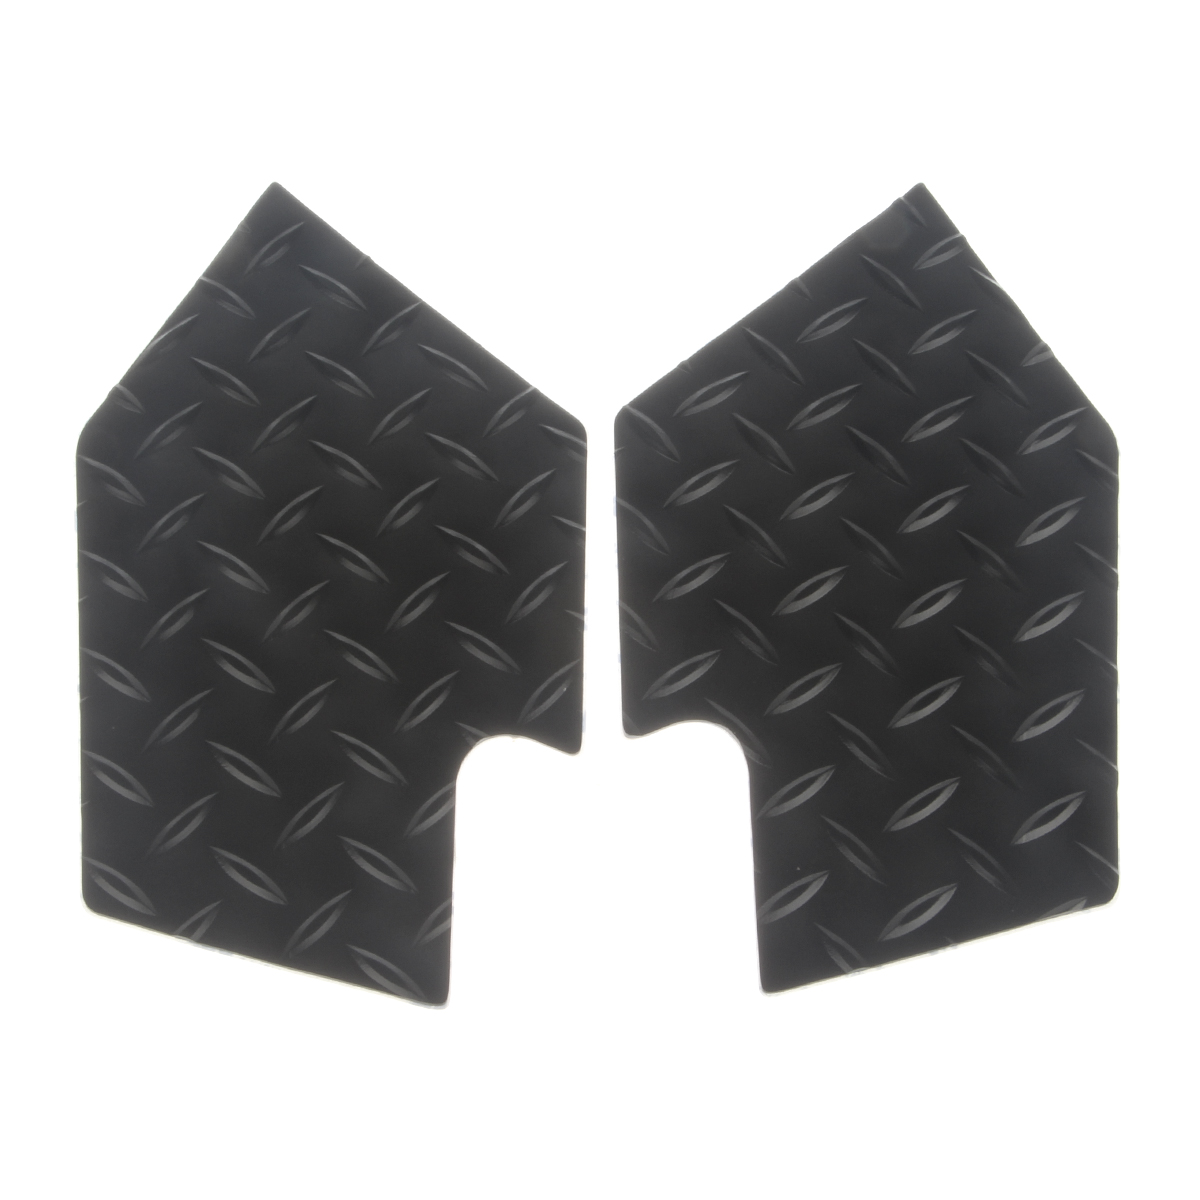 Black Motorcycle Sticker Tank Traction Pad Rubber Knee Grip Protector Decal For Ktm Duke 390 2013-2016 Duke 125 200 Moto Motorcycle Accessories & Parts Automobiles & Motorcycles